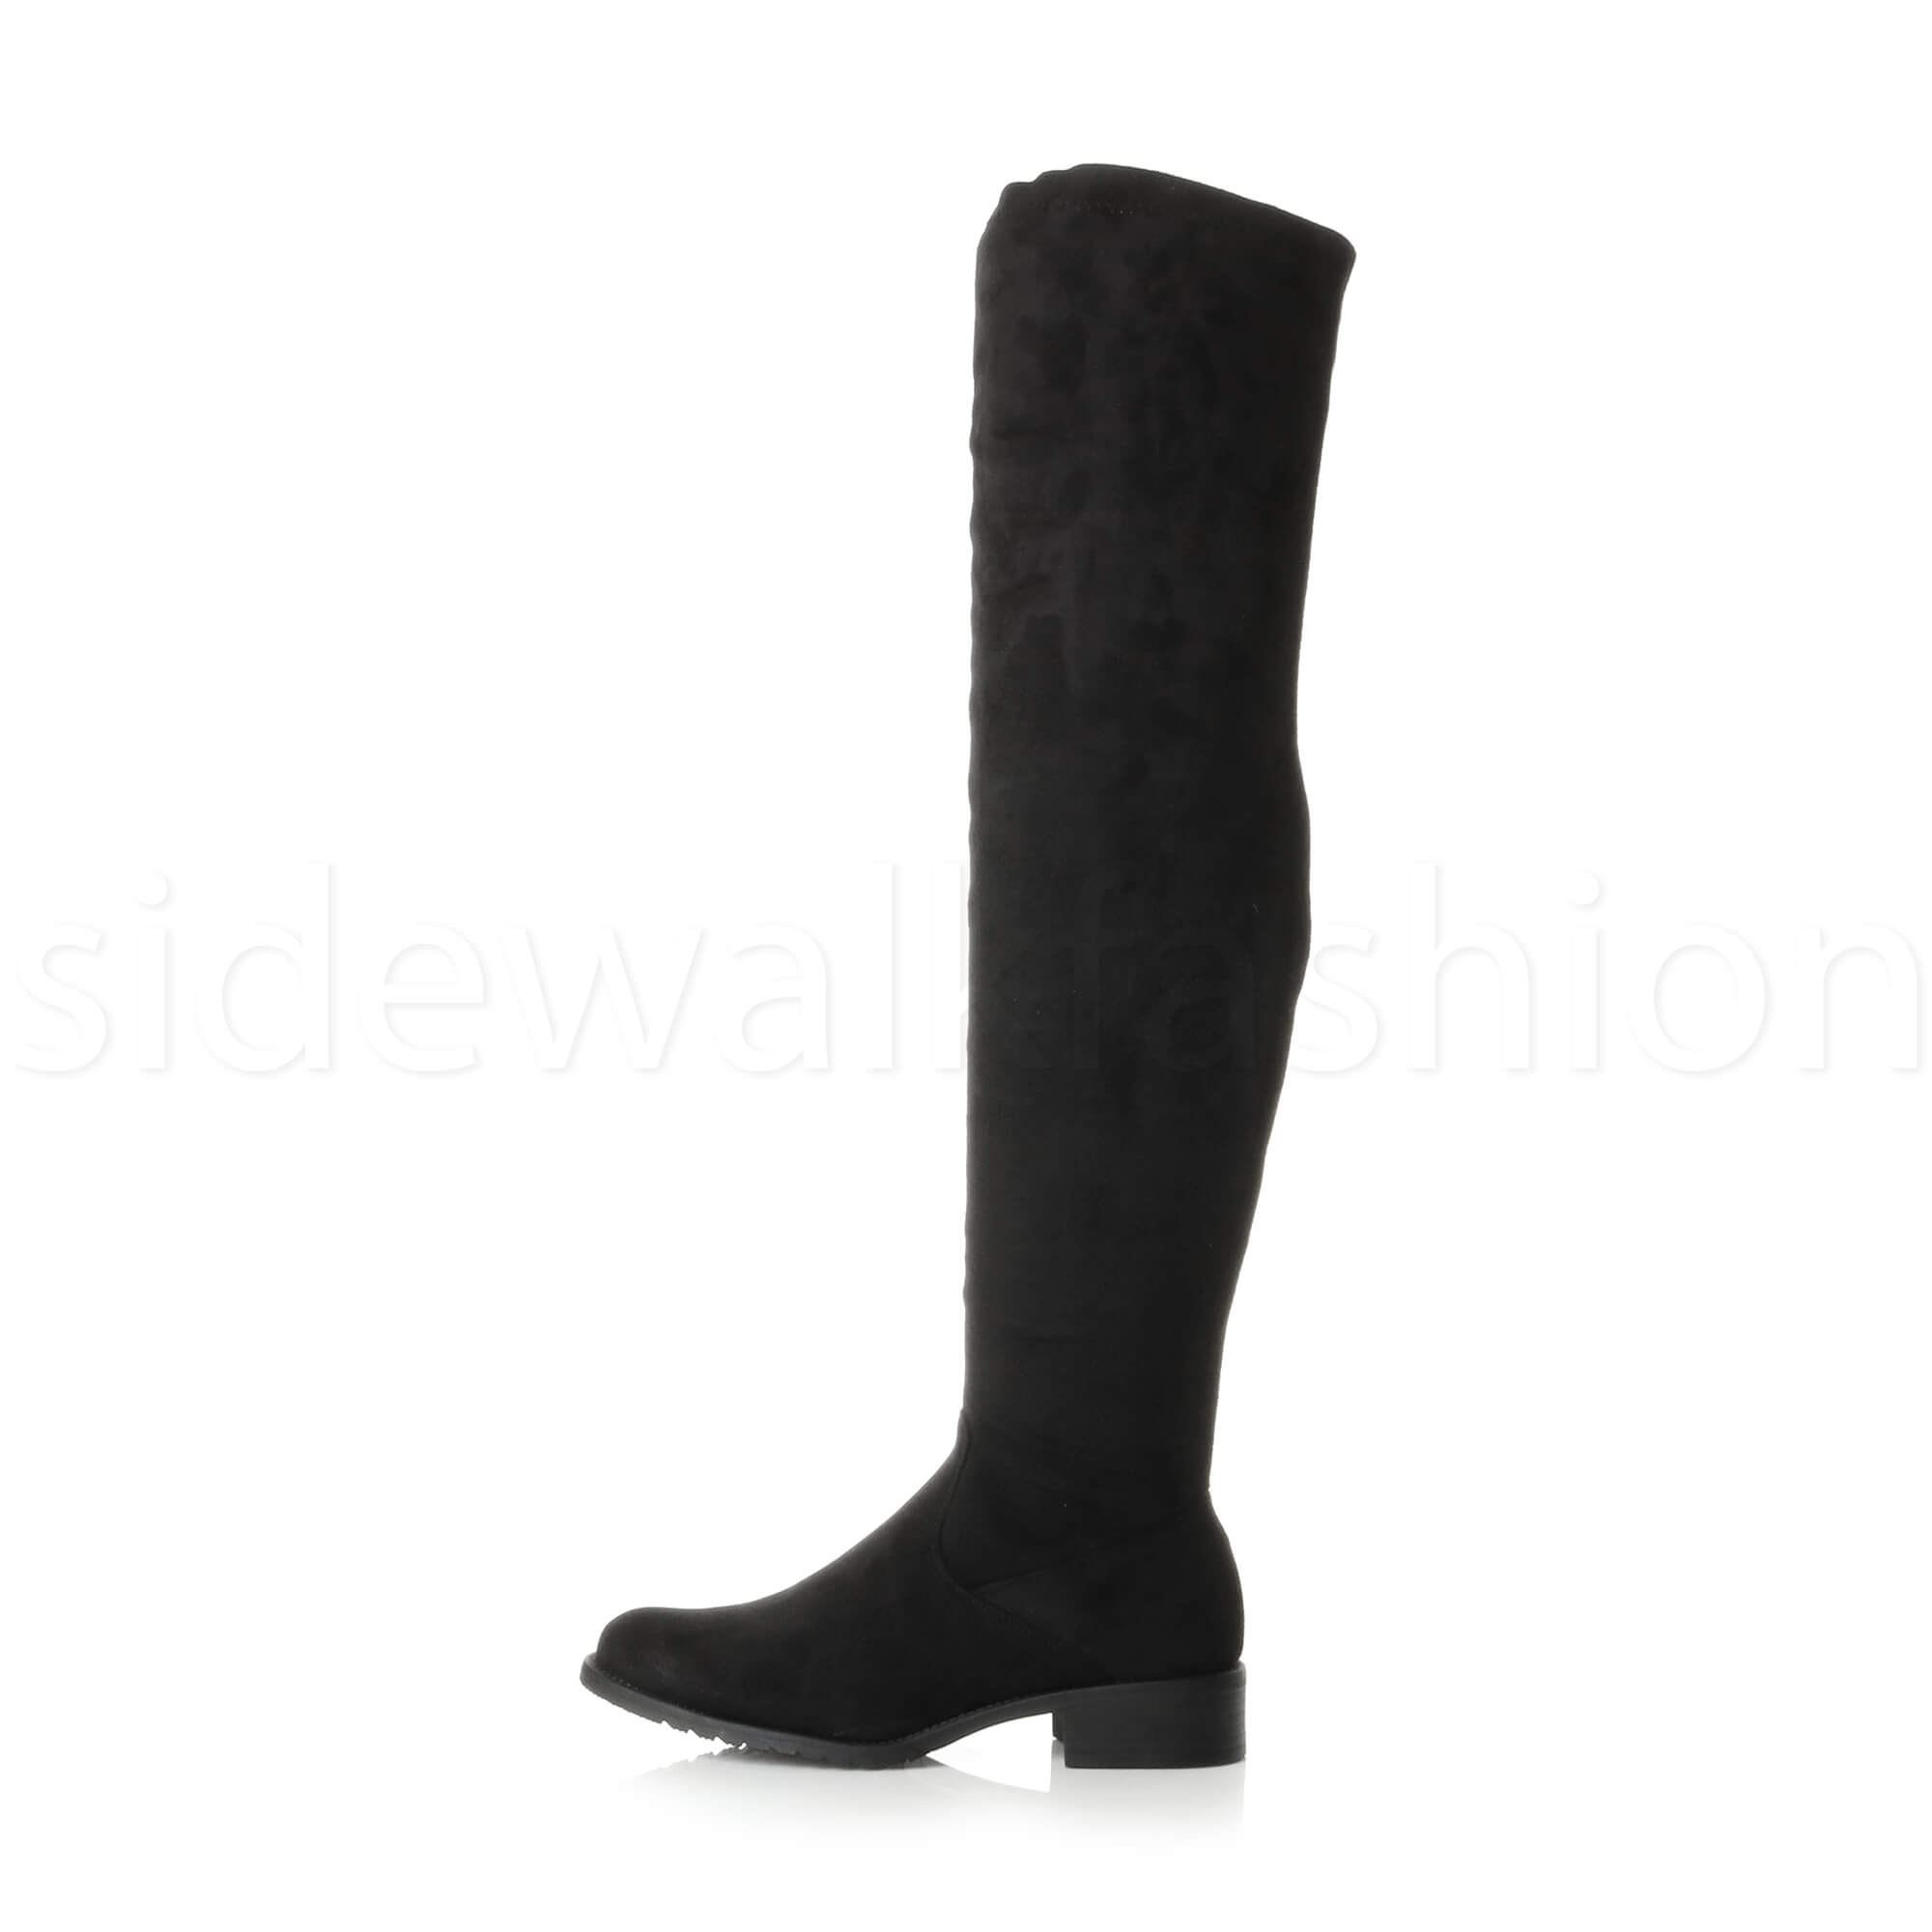 Womens-ladies-low-heel-high-over-the-knee-stretch-riding-boots-size